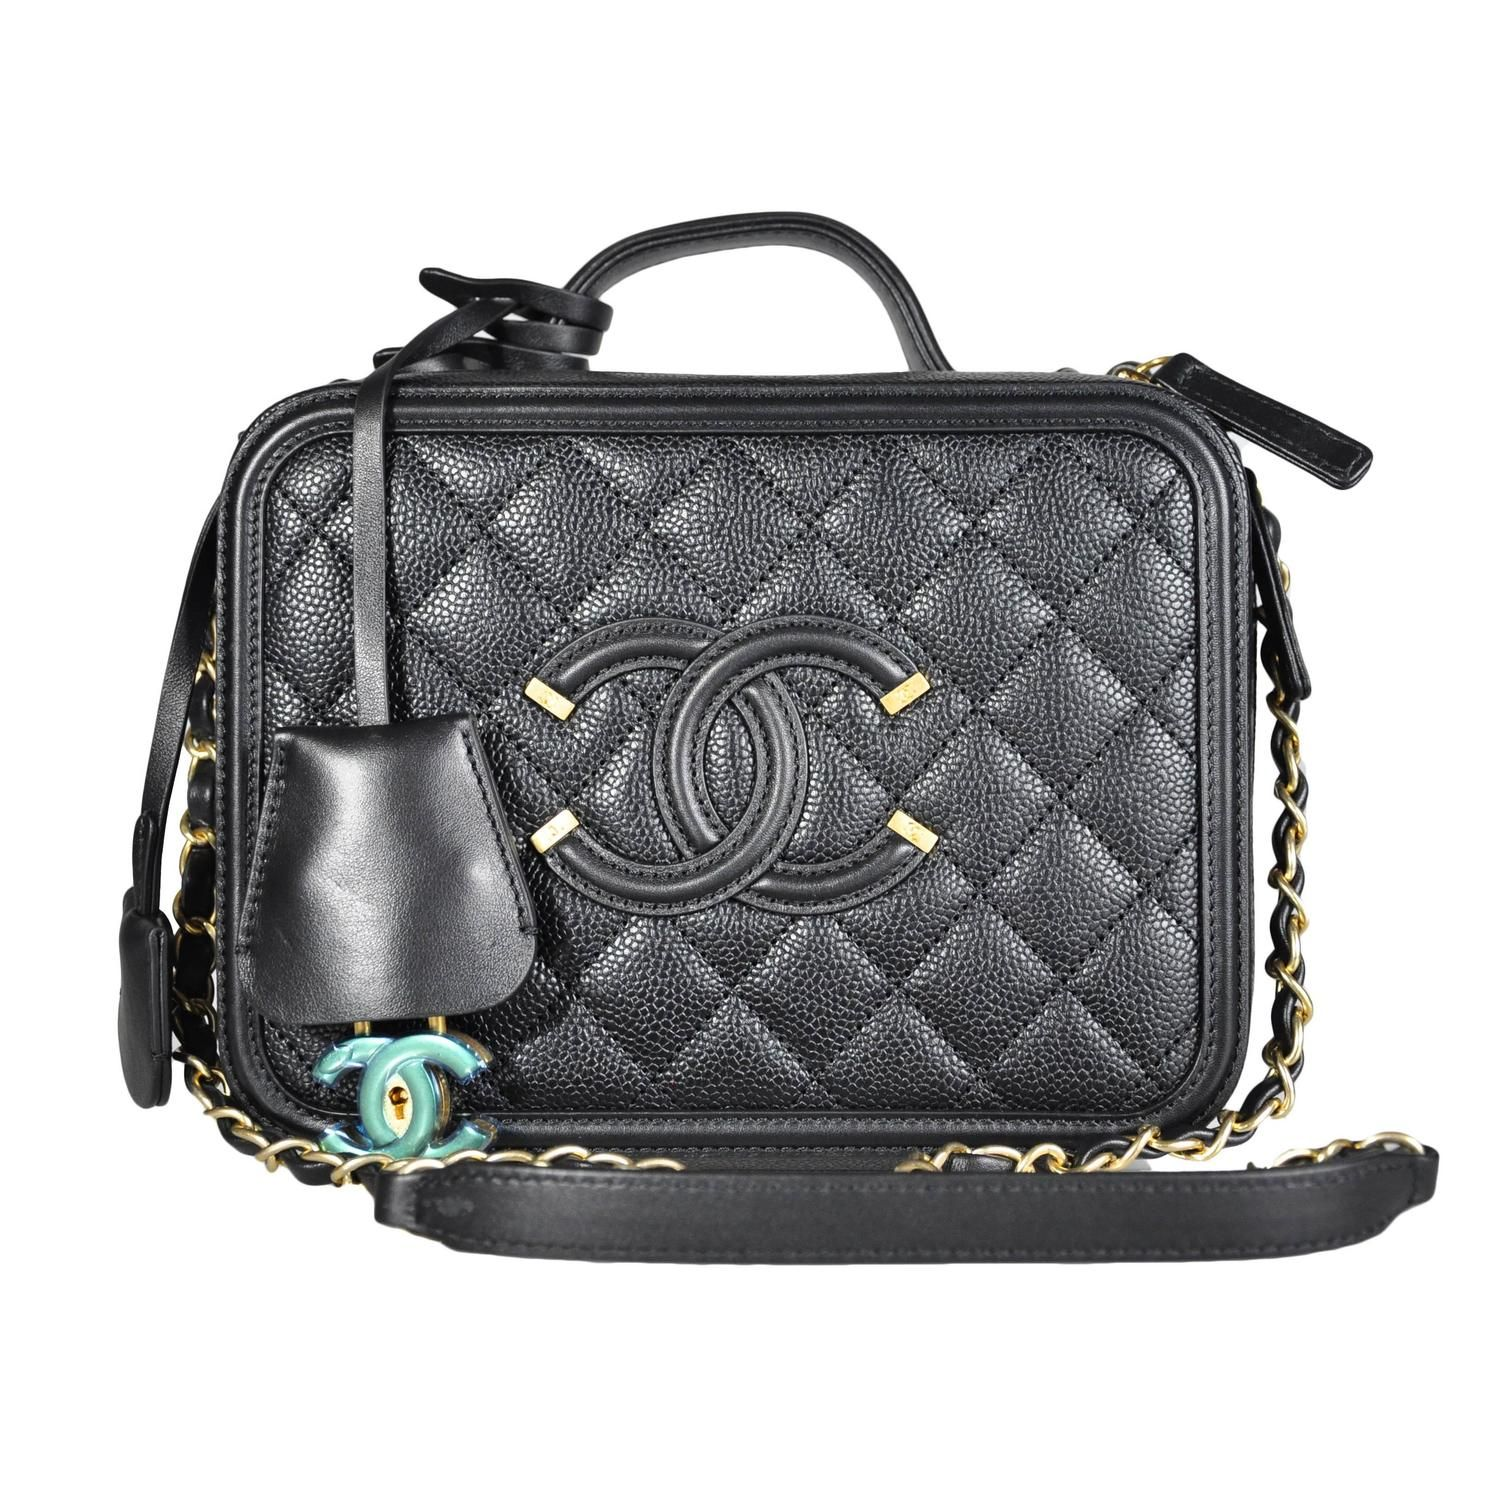 74e9d5671388 Chanel 2016 Black Leather Re-invented Vanity Case New